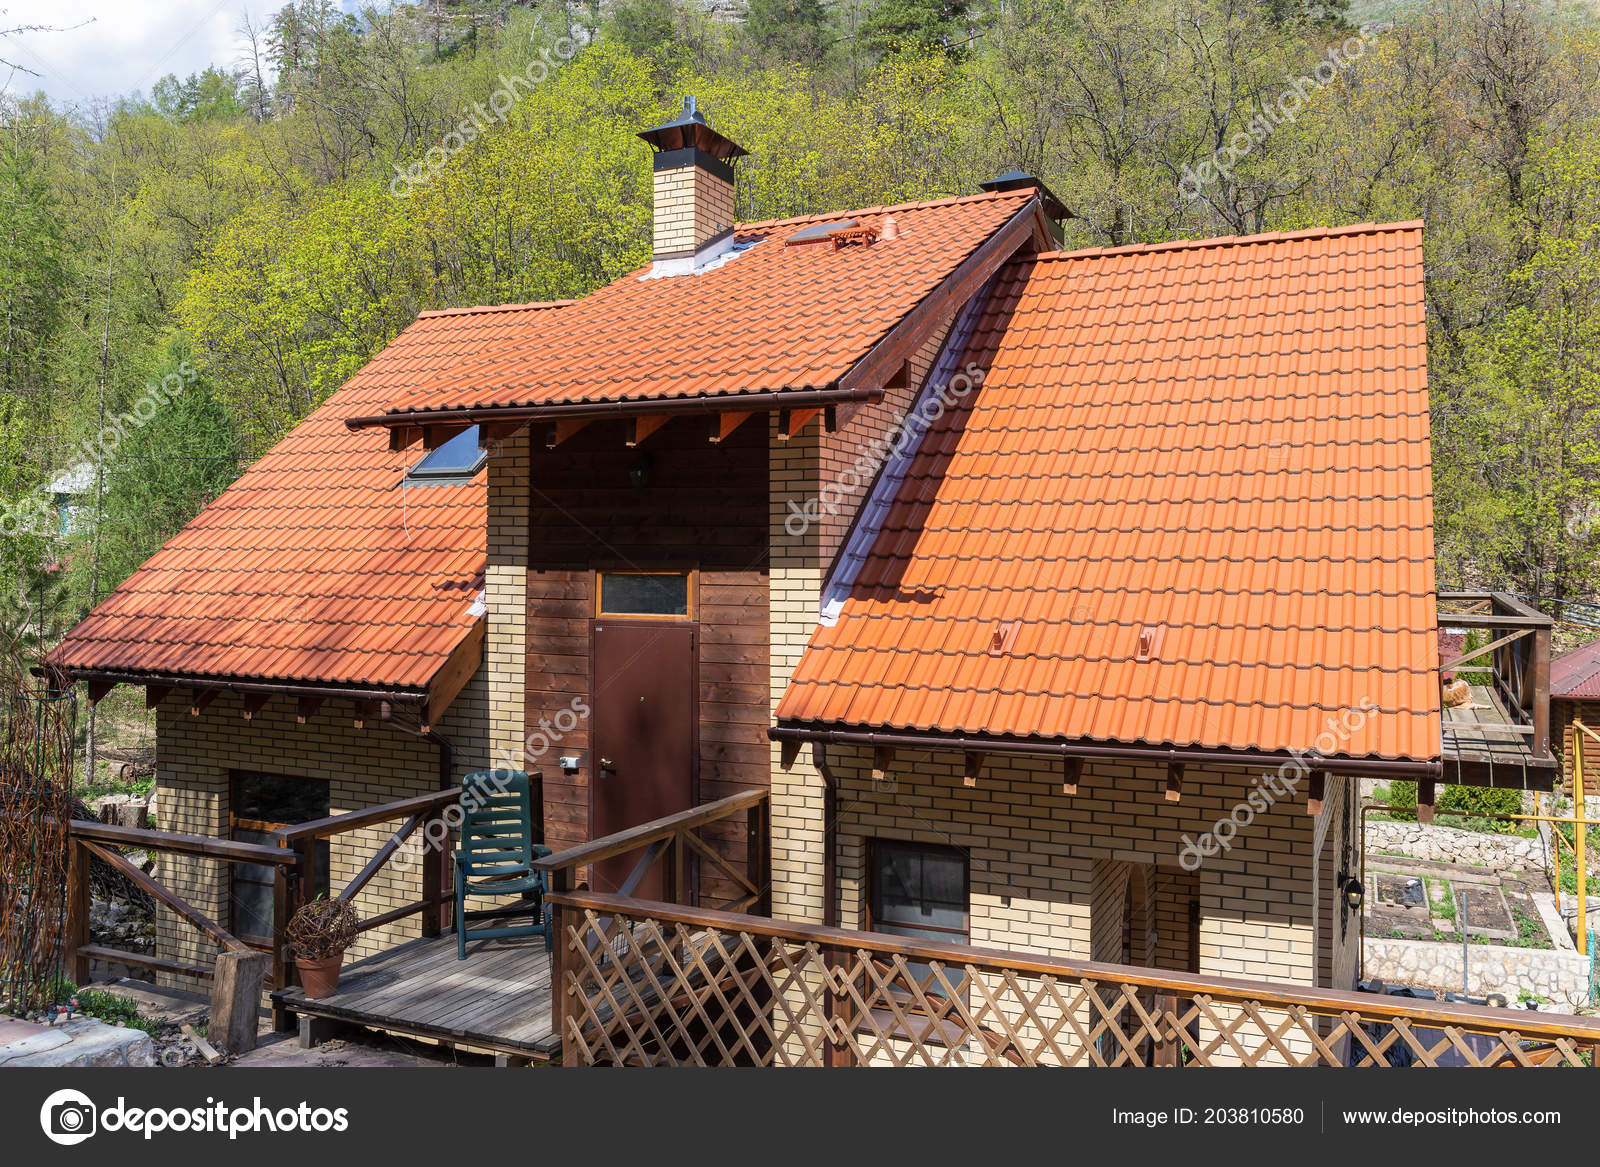 Modern Country House Tiled Roof — Stock Photo © Observer